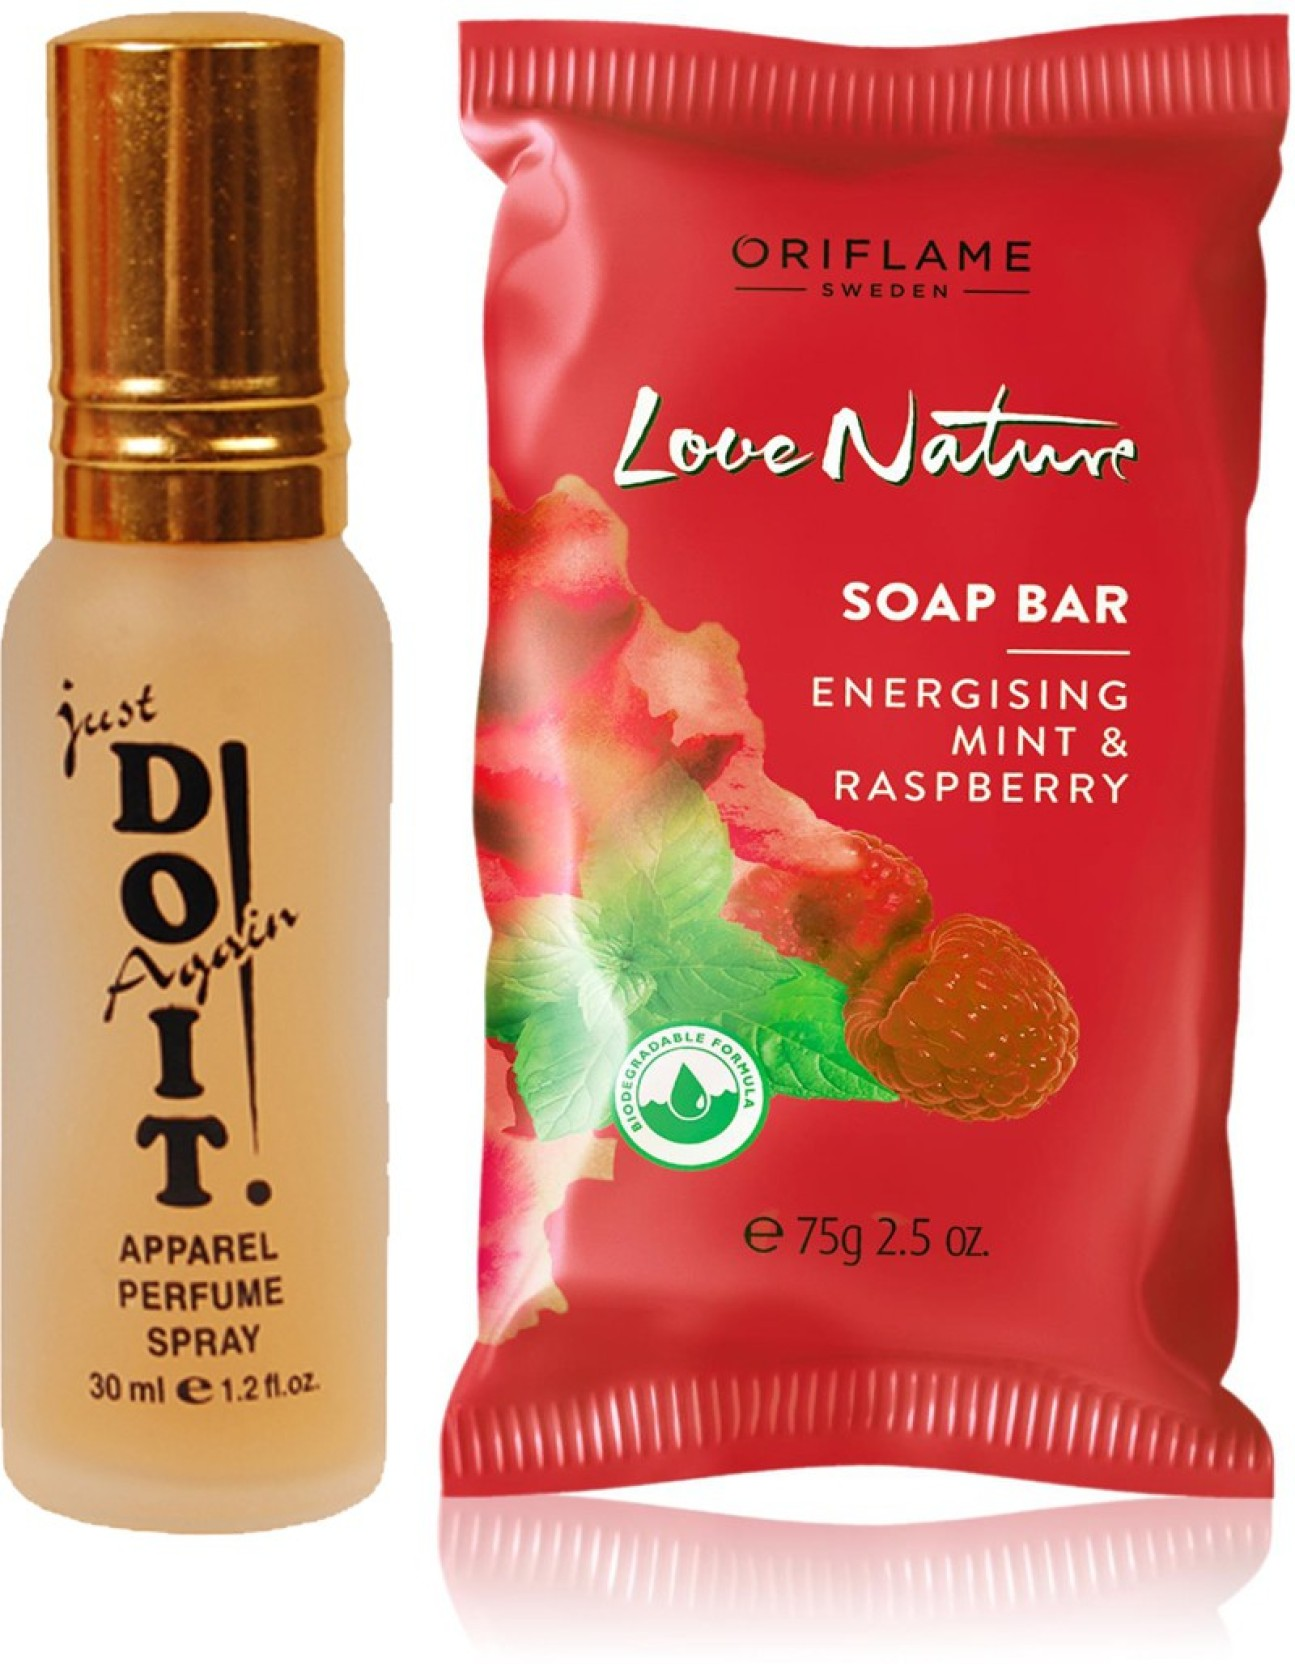 Oriflame Sweden Love Nature Soap Bar Energising Mint Raspberry 75g Ra Glow Add To Cart